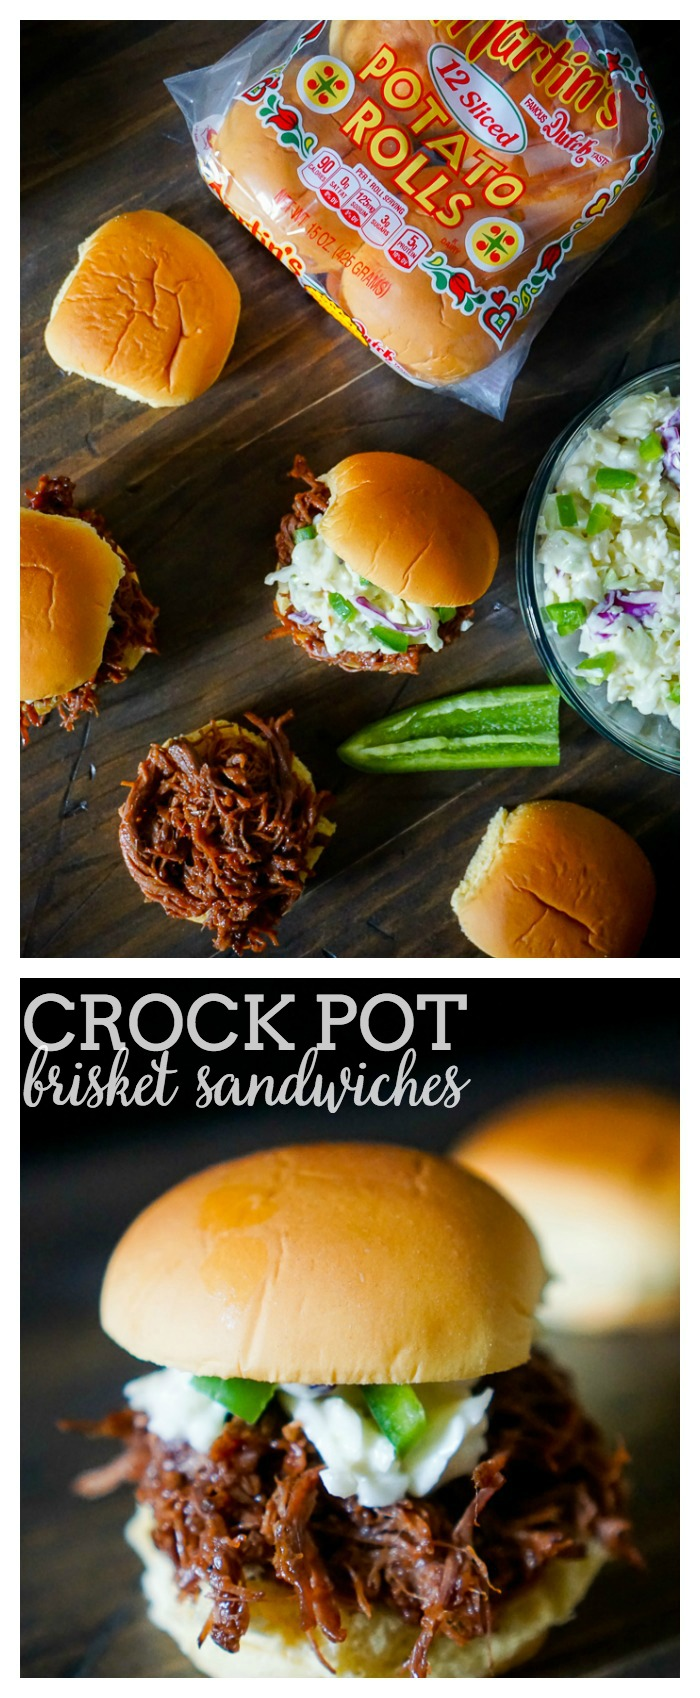 Crock Pot Brisket Sandwiches with Jalapeno Cole Slaw - Keep your house cool this summer with this delicious BBQ recipe! | The Love Nerds #ad #MartinsMakesWaves @Martin'sPotatoRolls